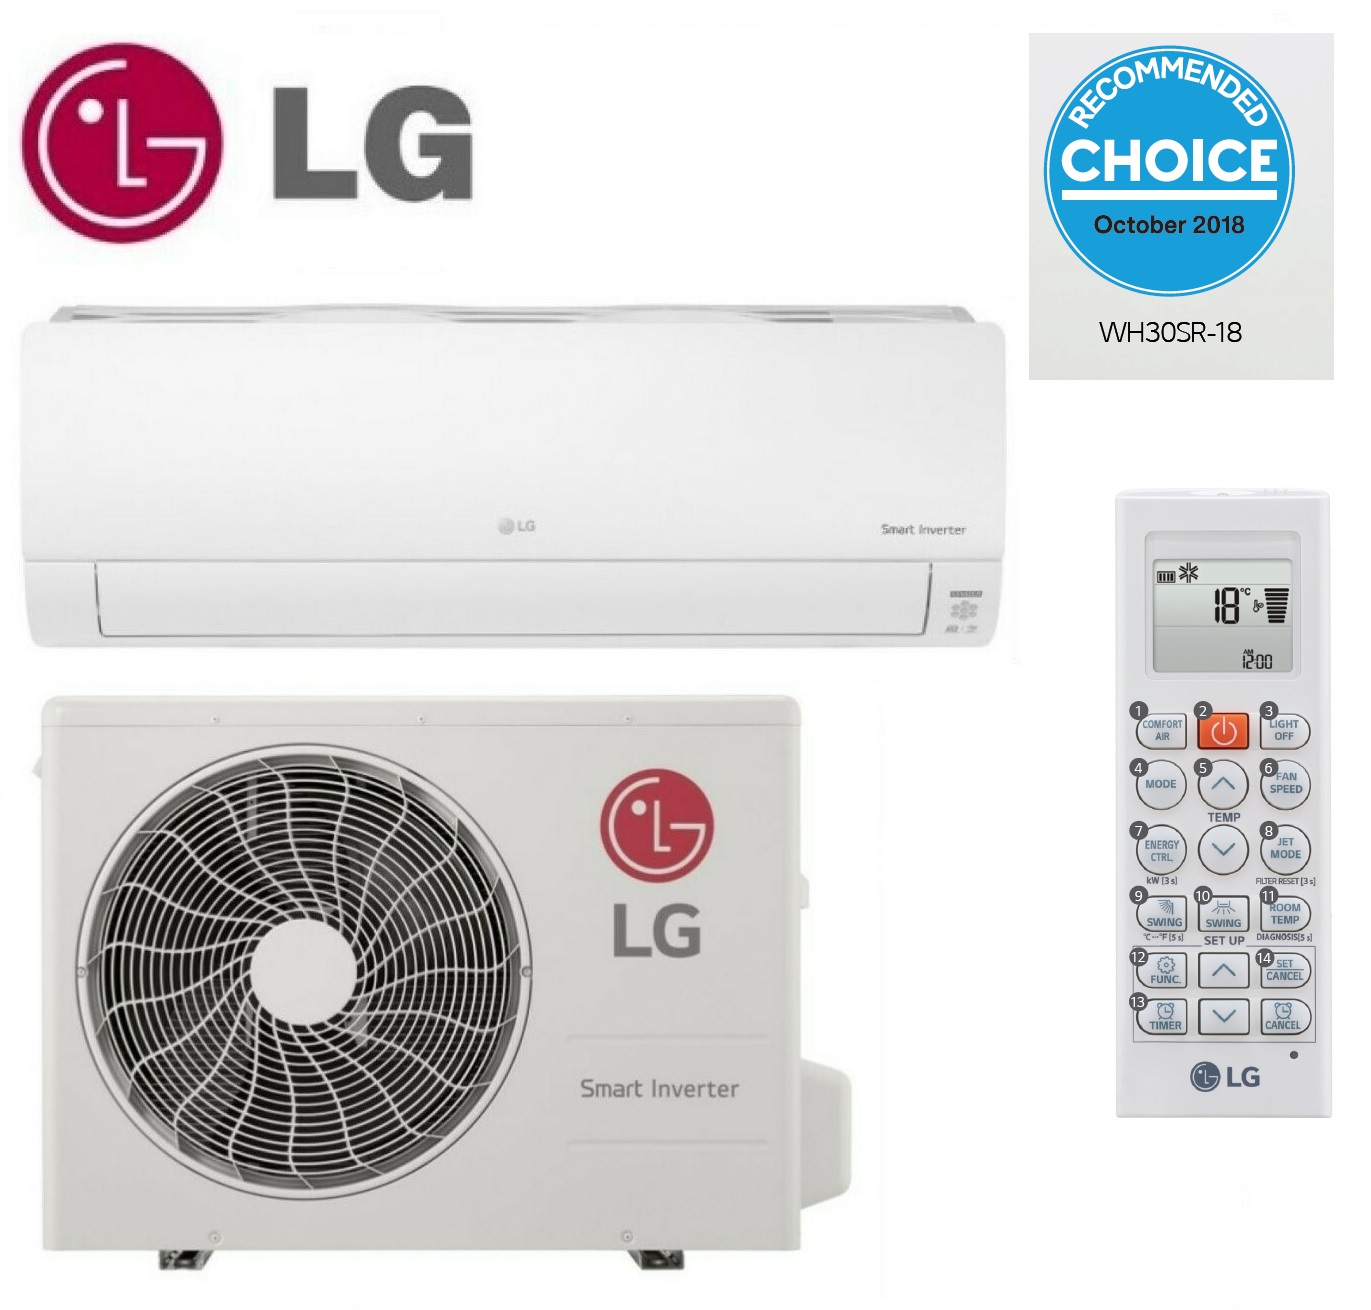 LG Air conditioner. Model no:WH34SR-18